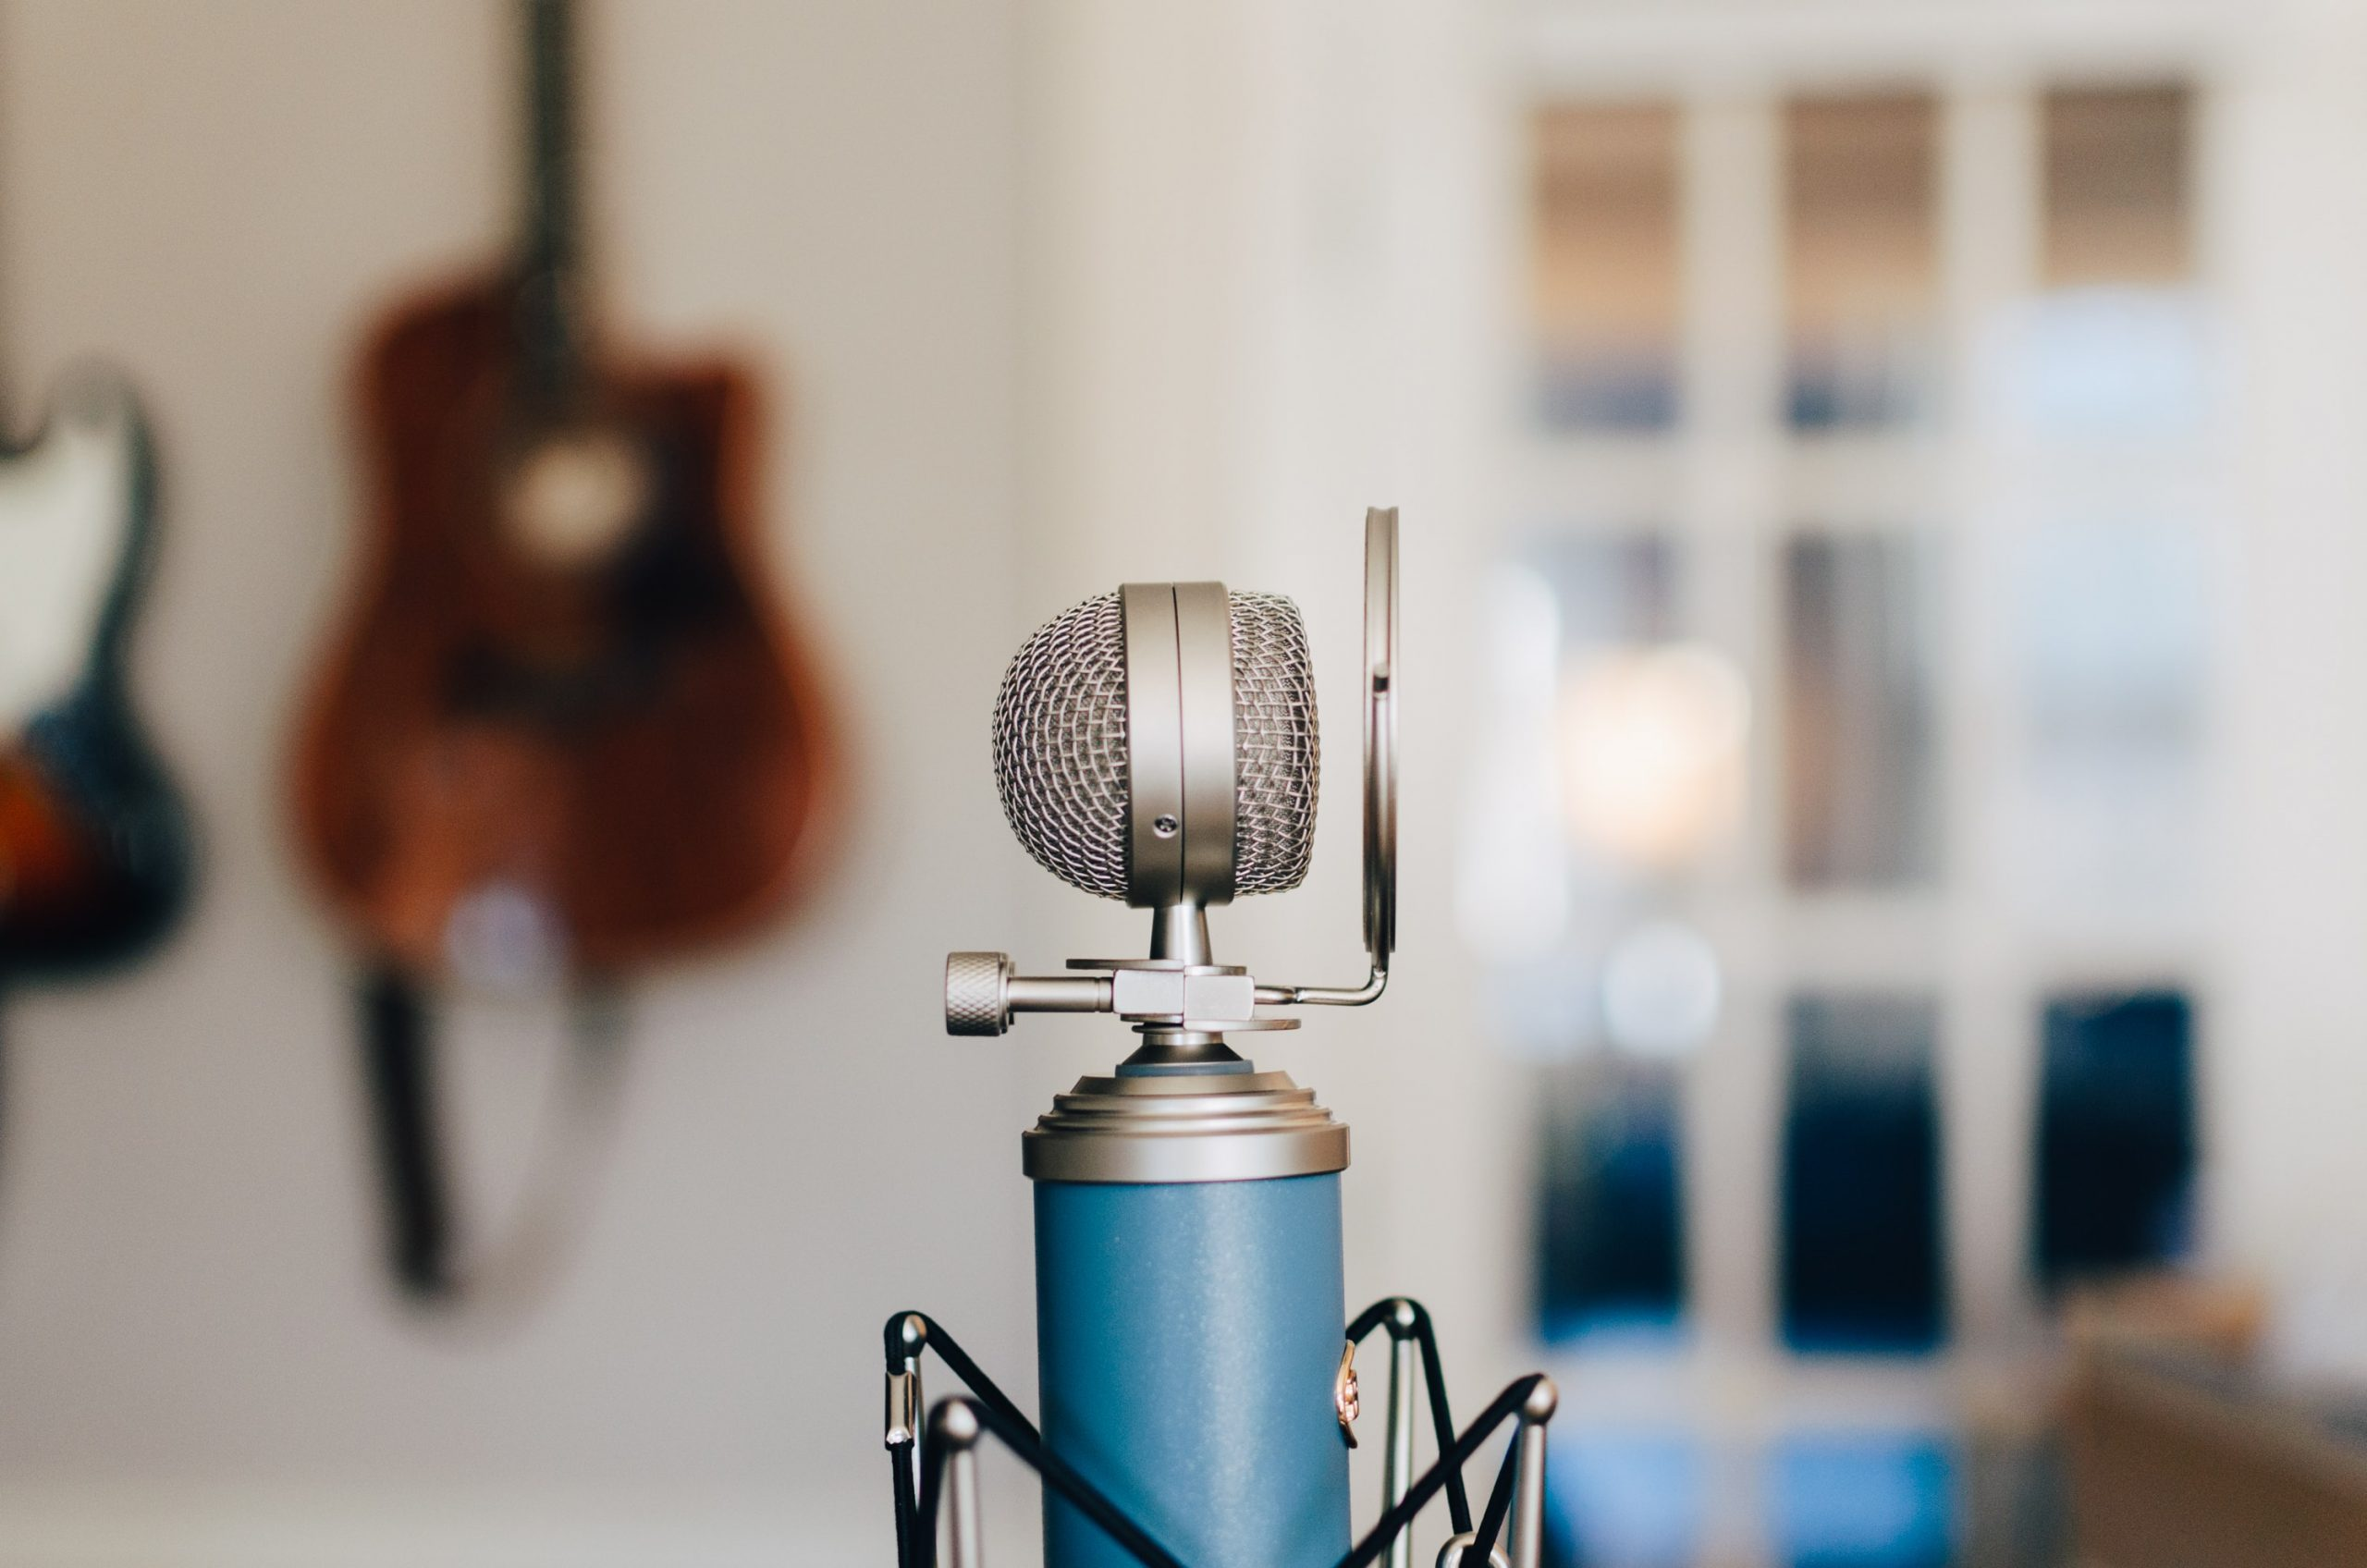 Photo of a recording mic.